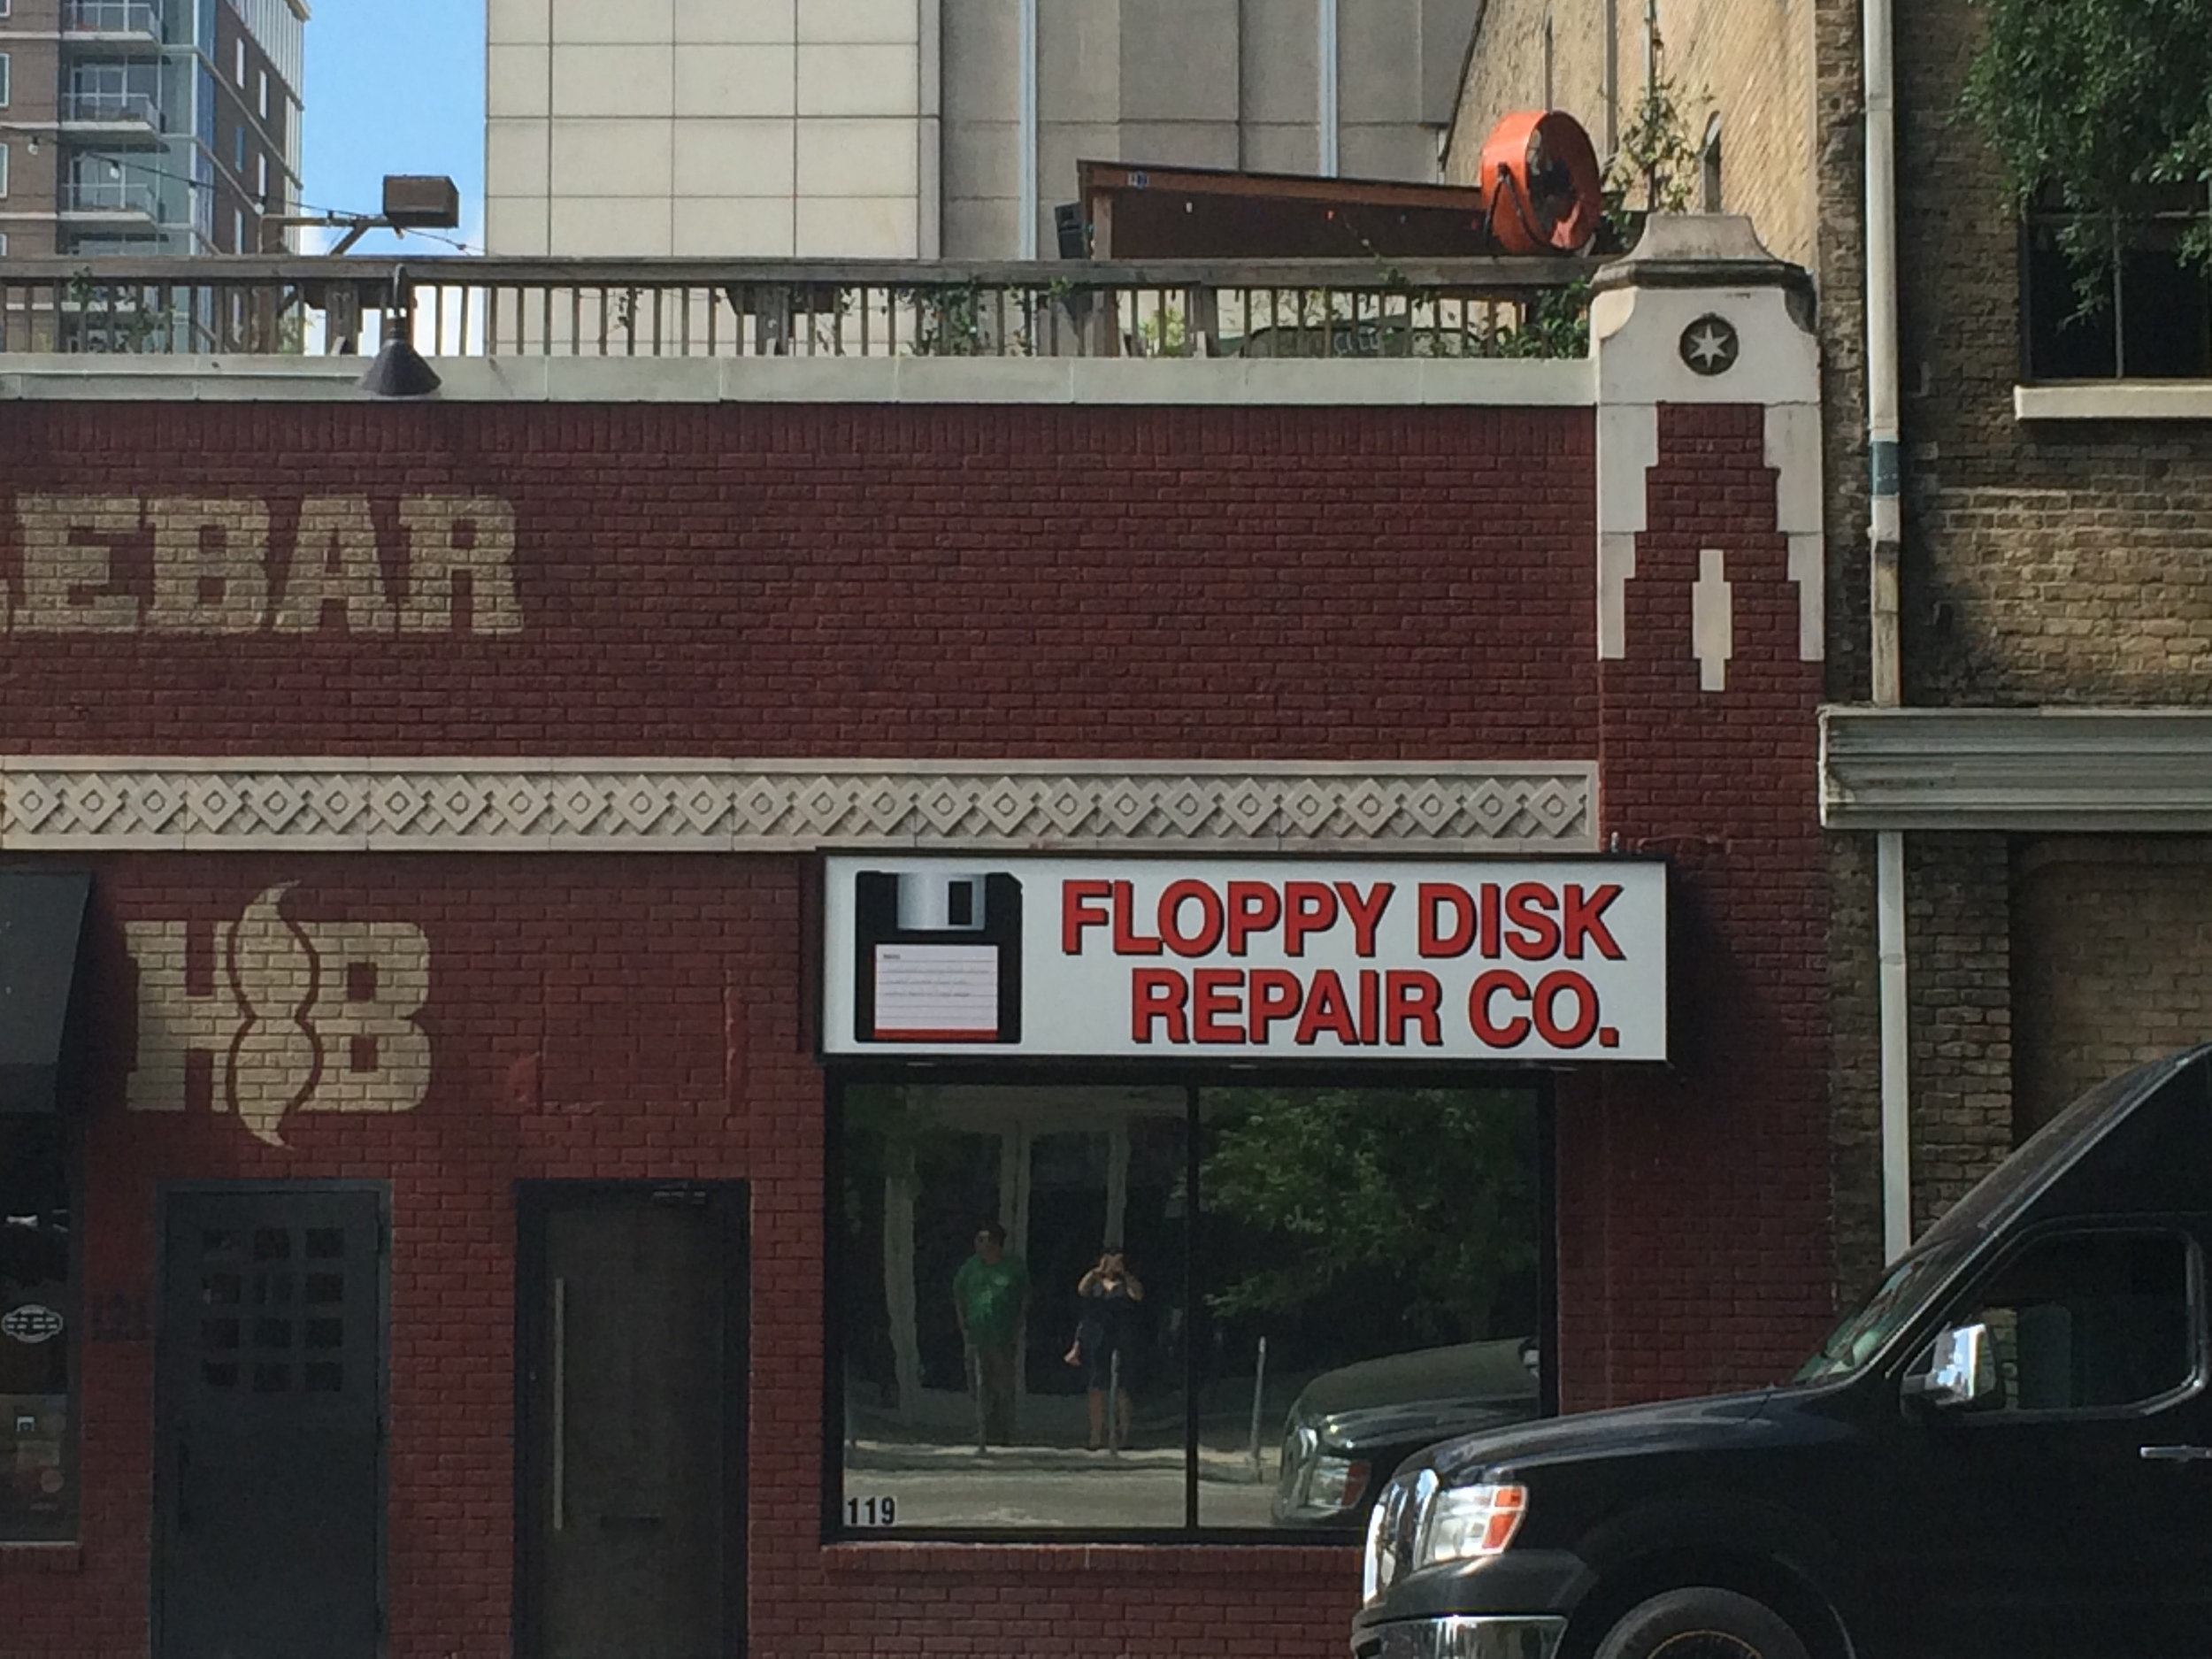 I need my floppy disk repaired. Obviously.